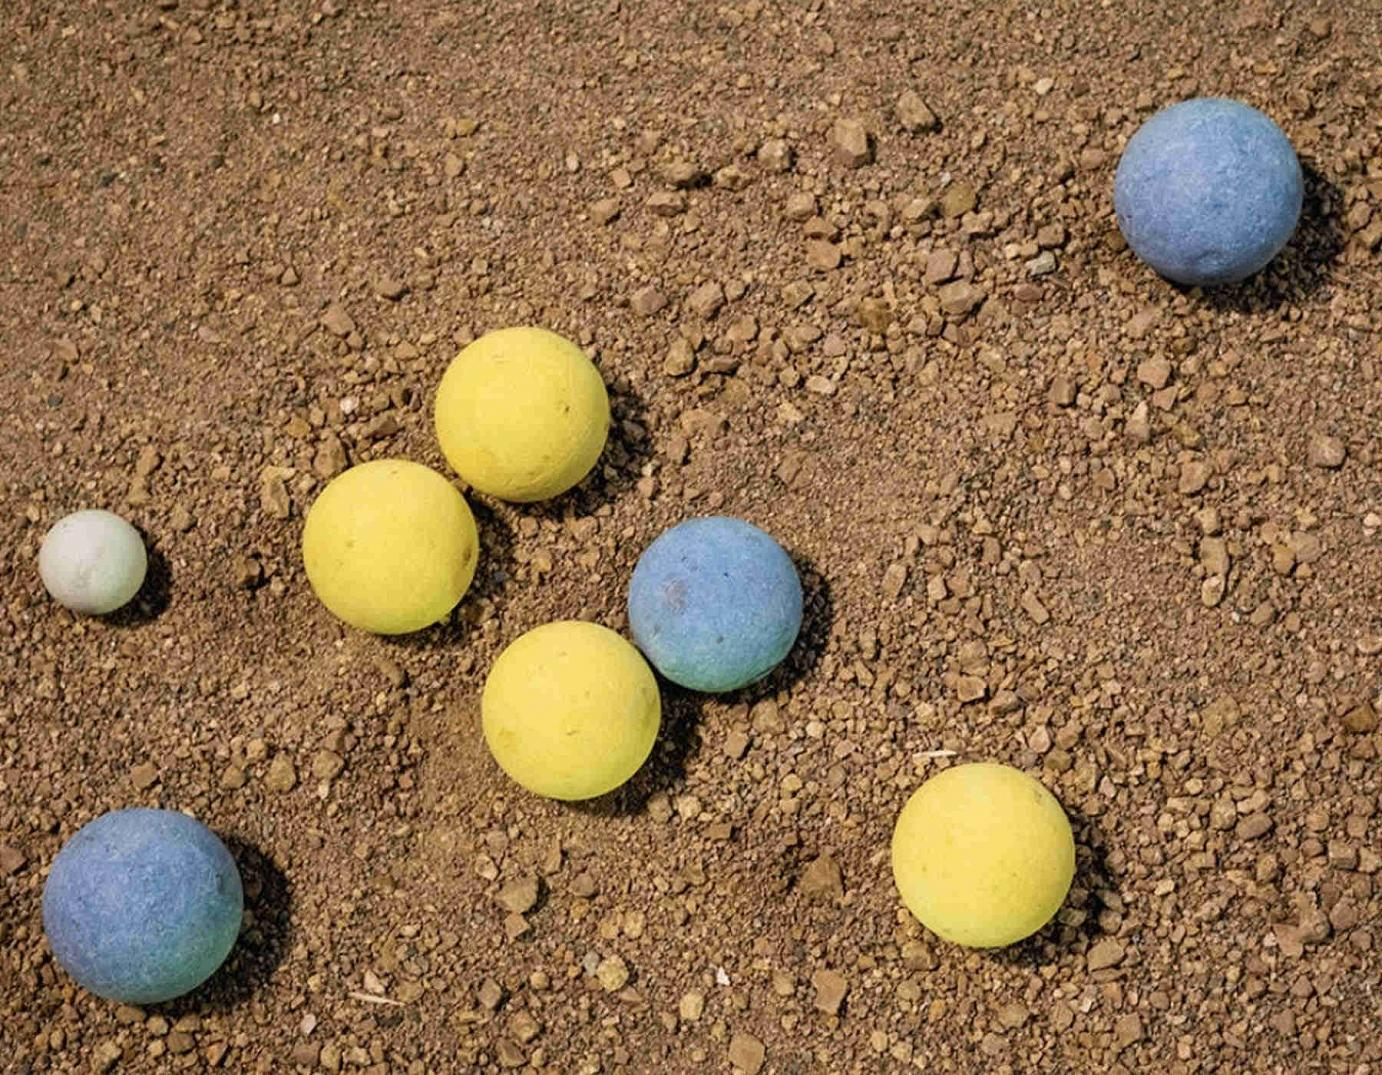 bocce balls on the ground